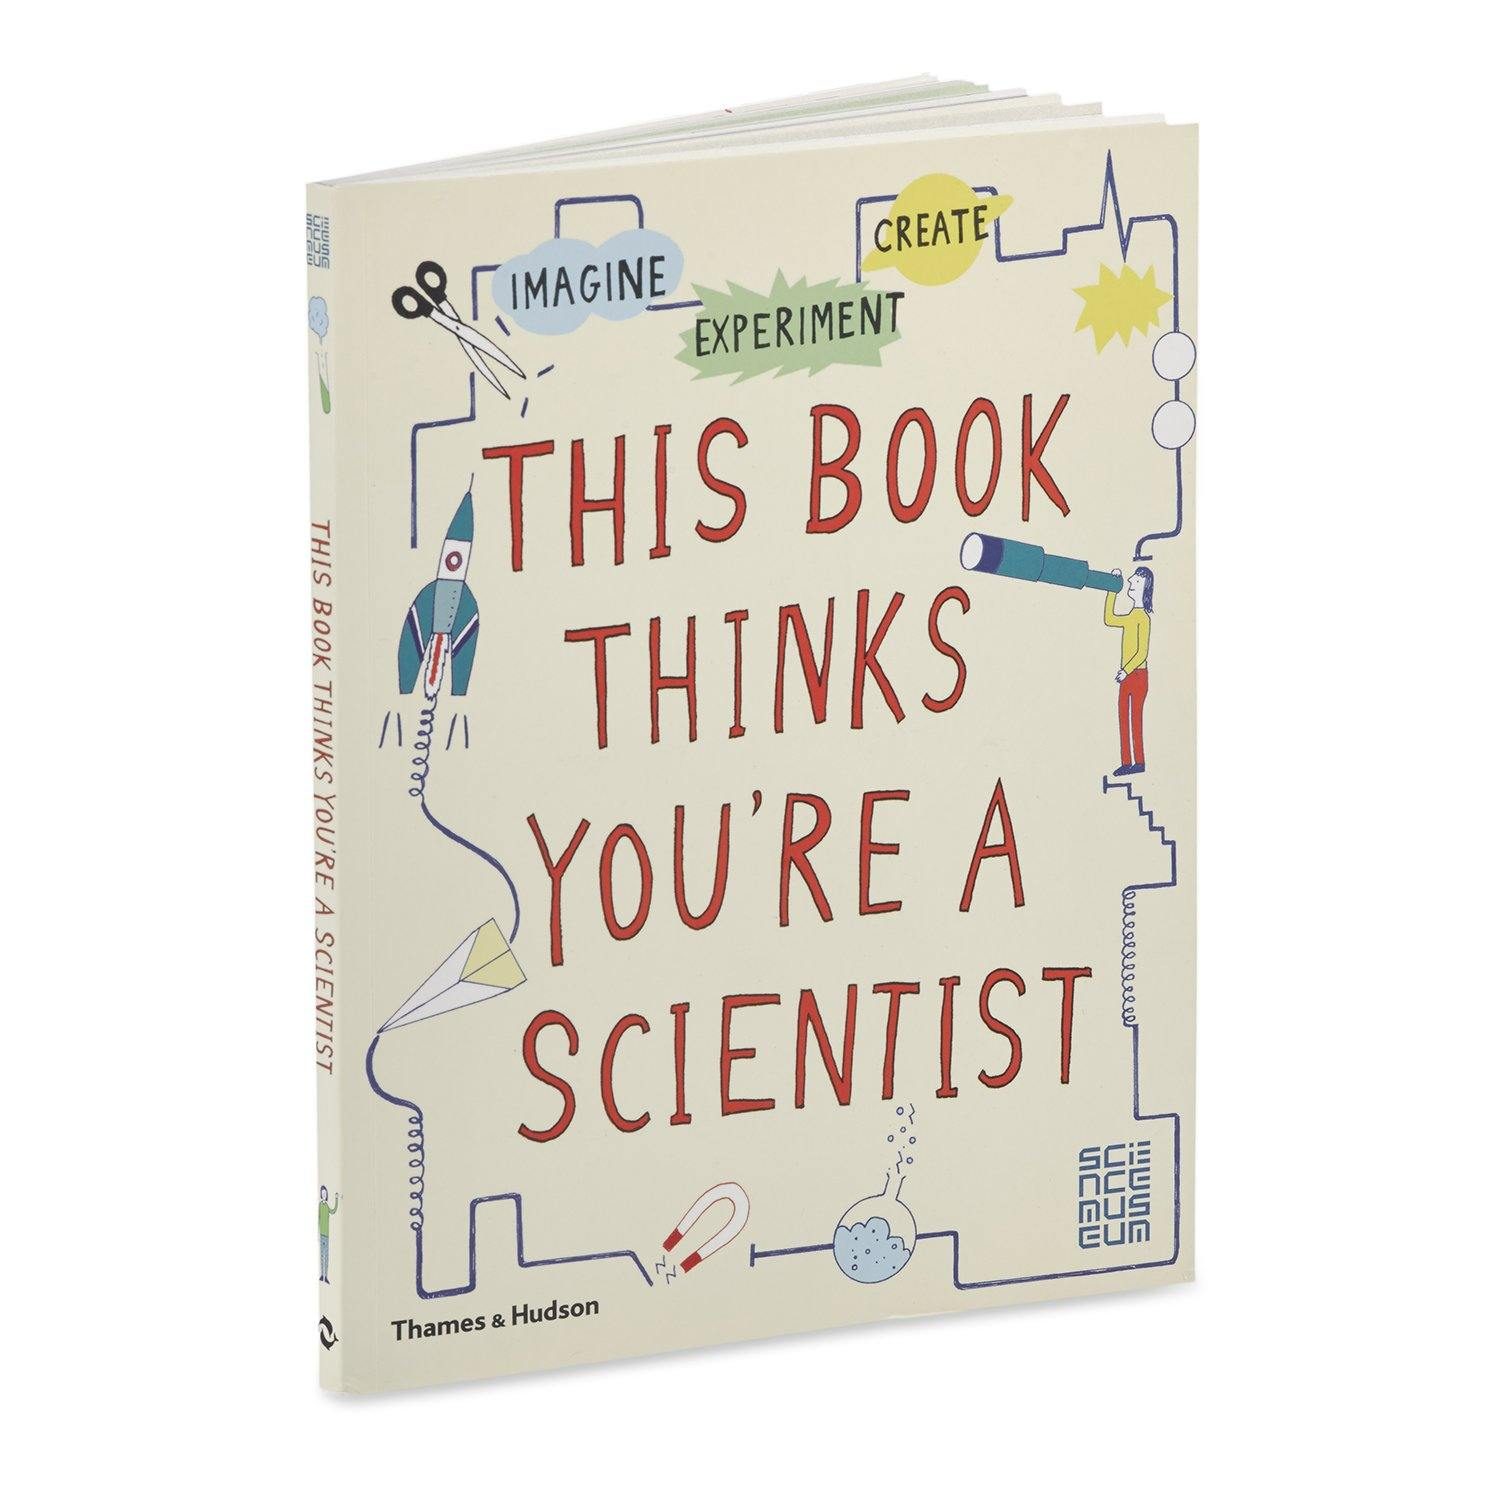 Science Museum This Book Thinks You're A Scientist